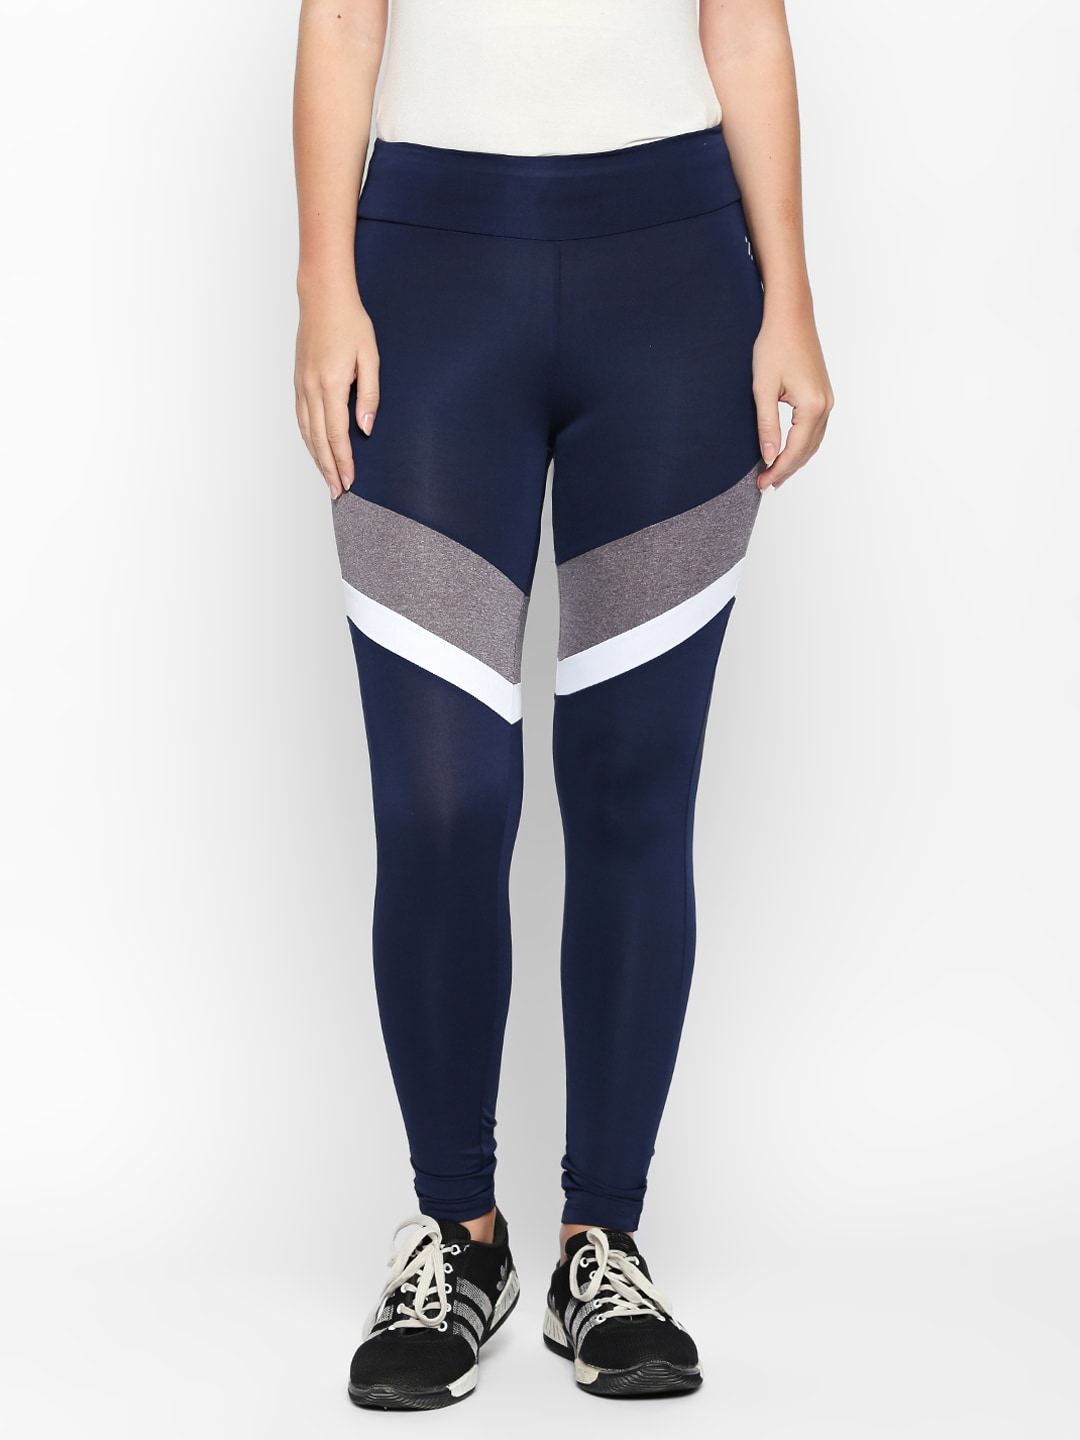 1886bbd4657c1 Tights - Buy Tights for Women, Men & Kids Online in India | Myntra